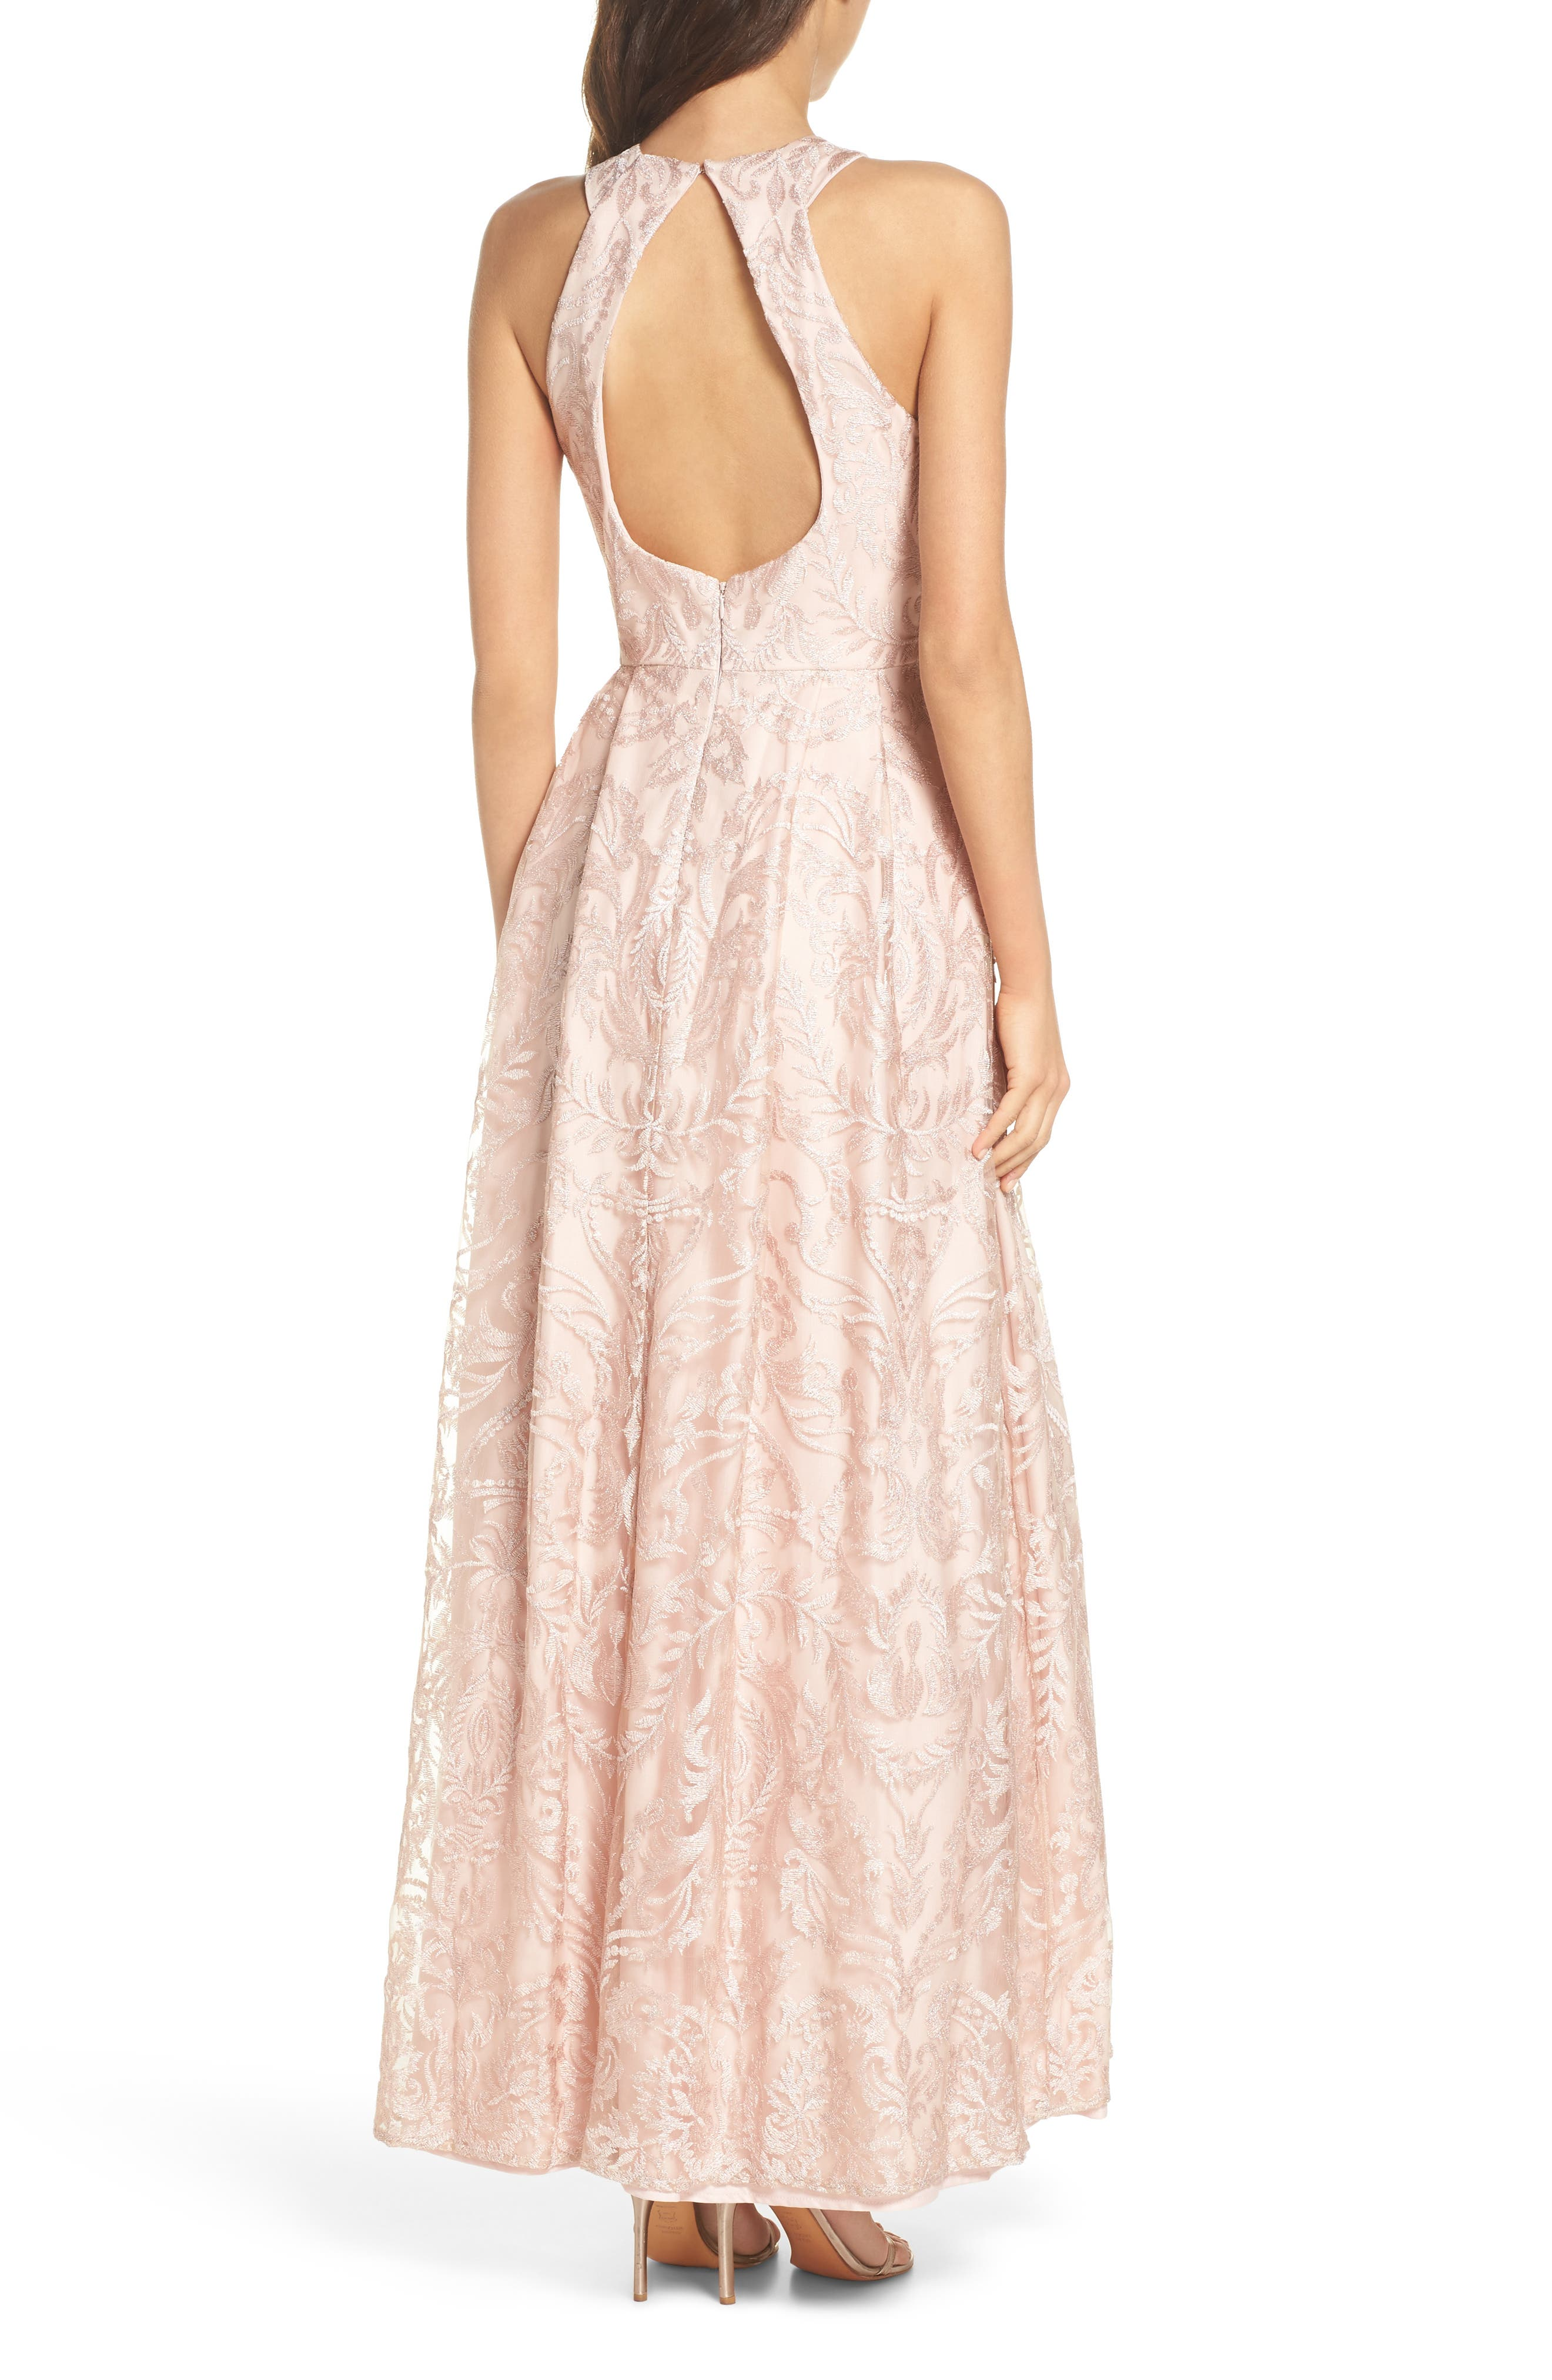 Keyhole Neck Embroidered Ballgown,                             Alternate thumbnail 2, color,                             Blush / Nude